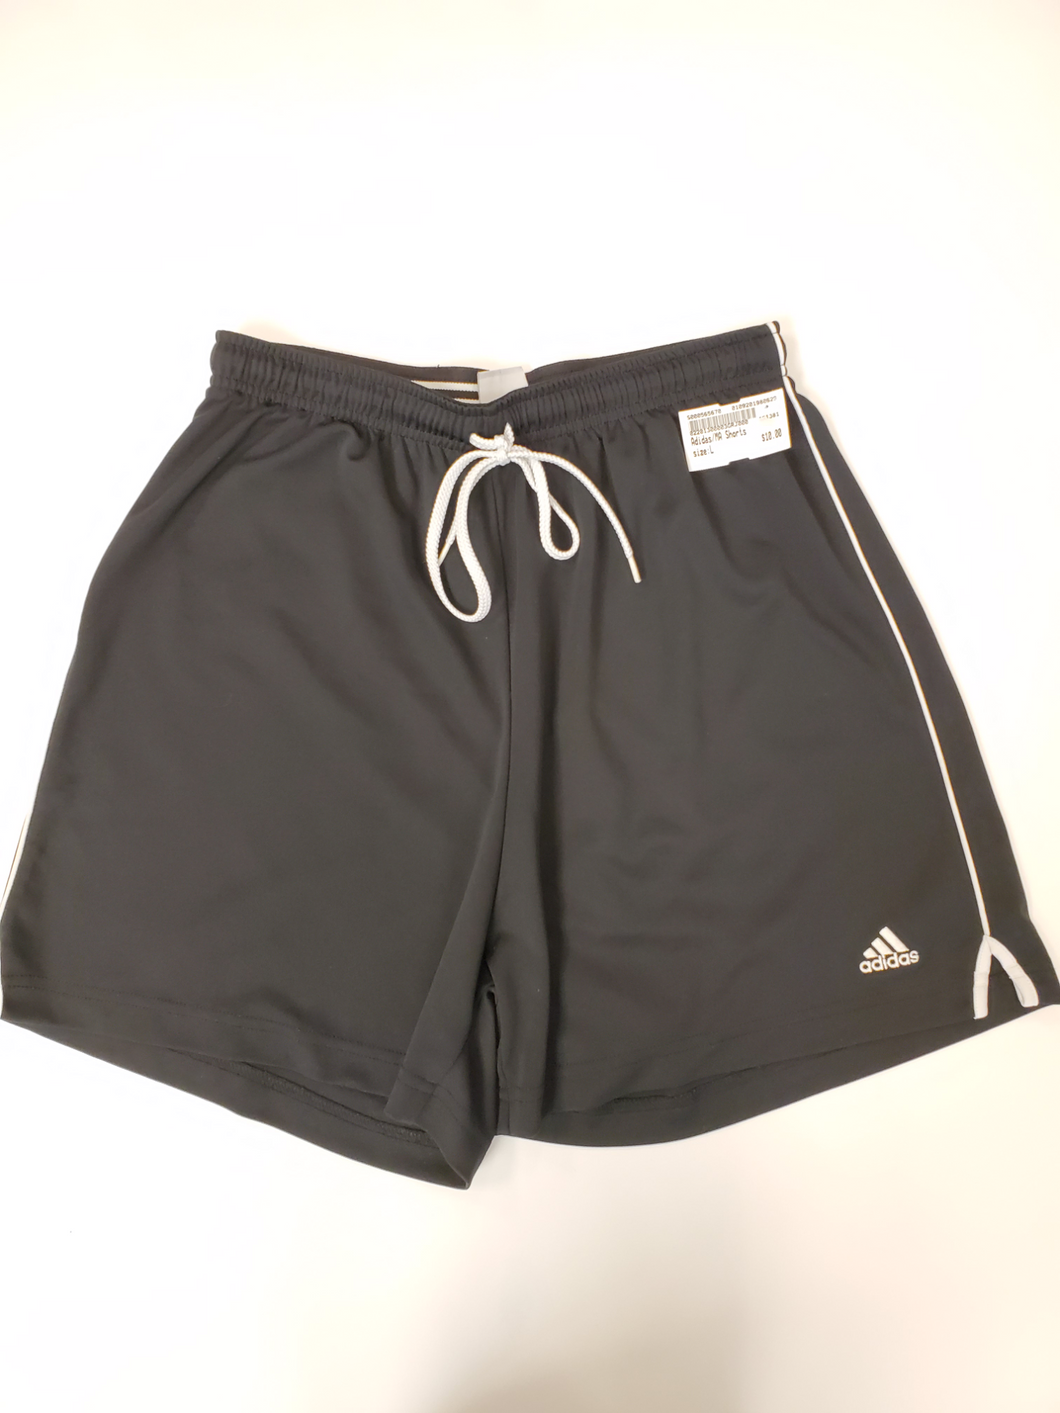 Adidas Athletic Shorts Size Large